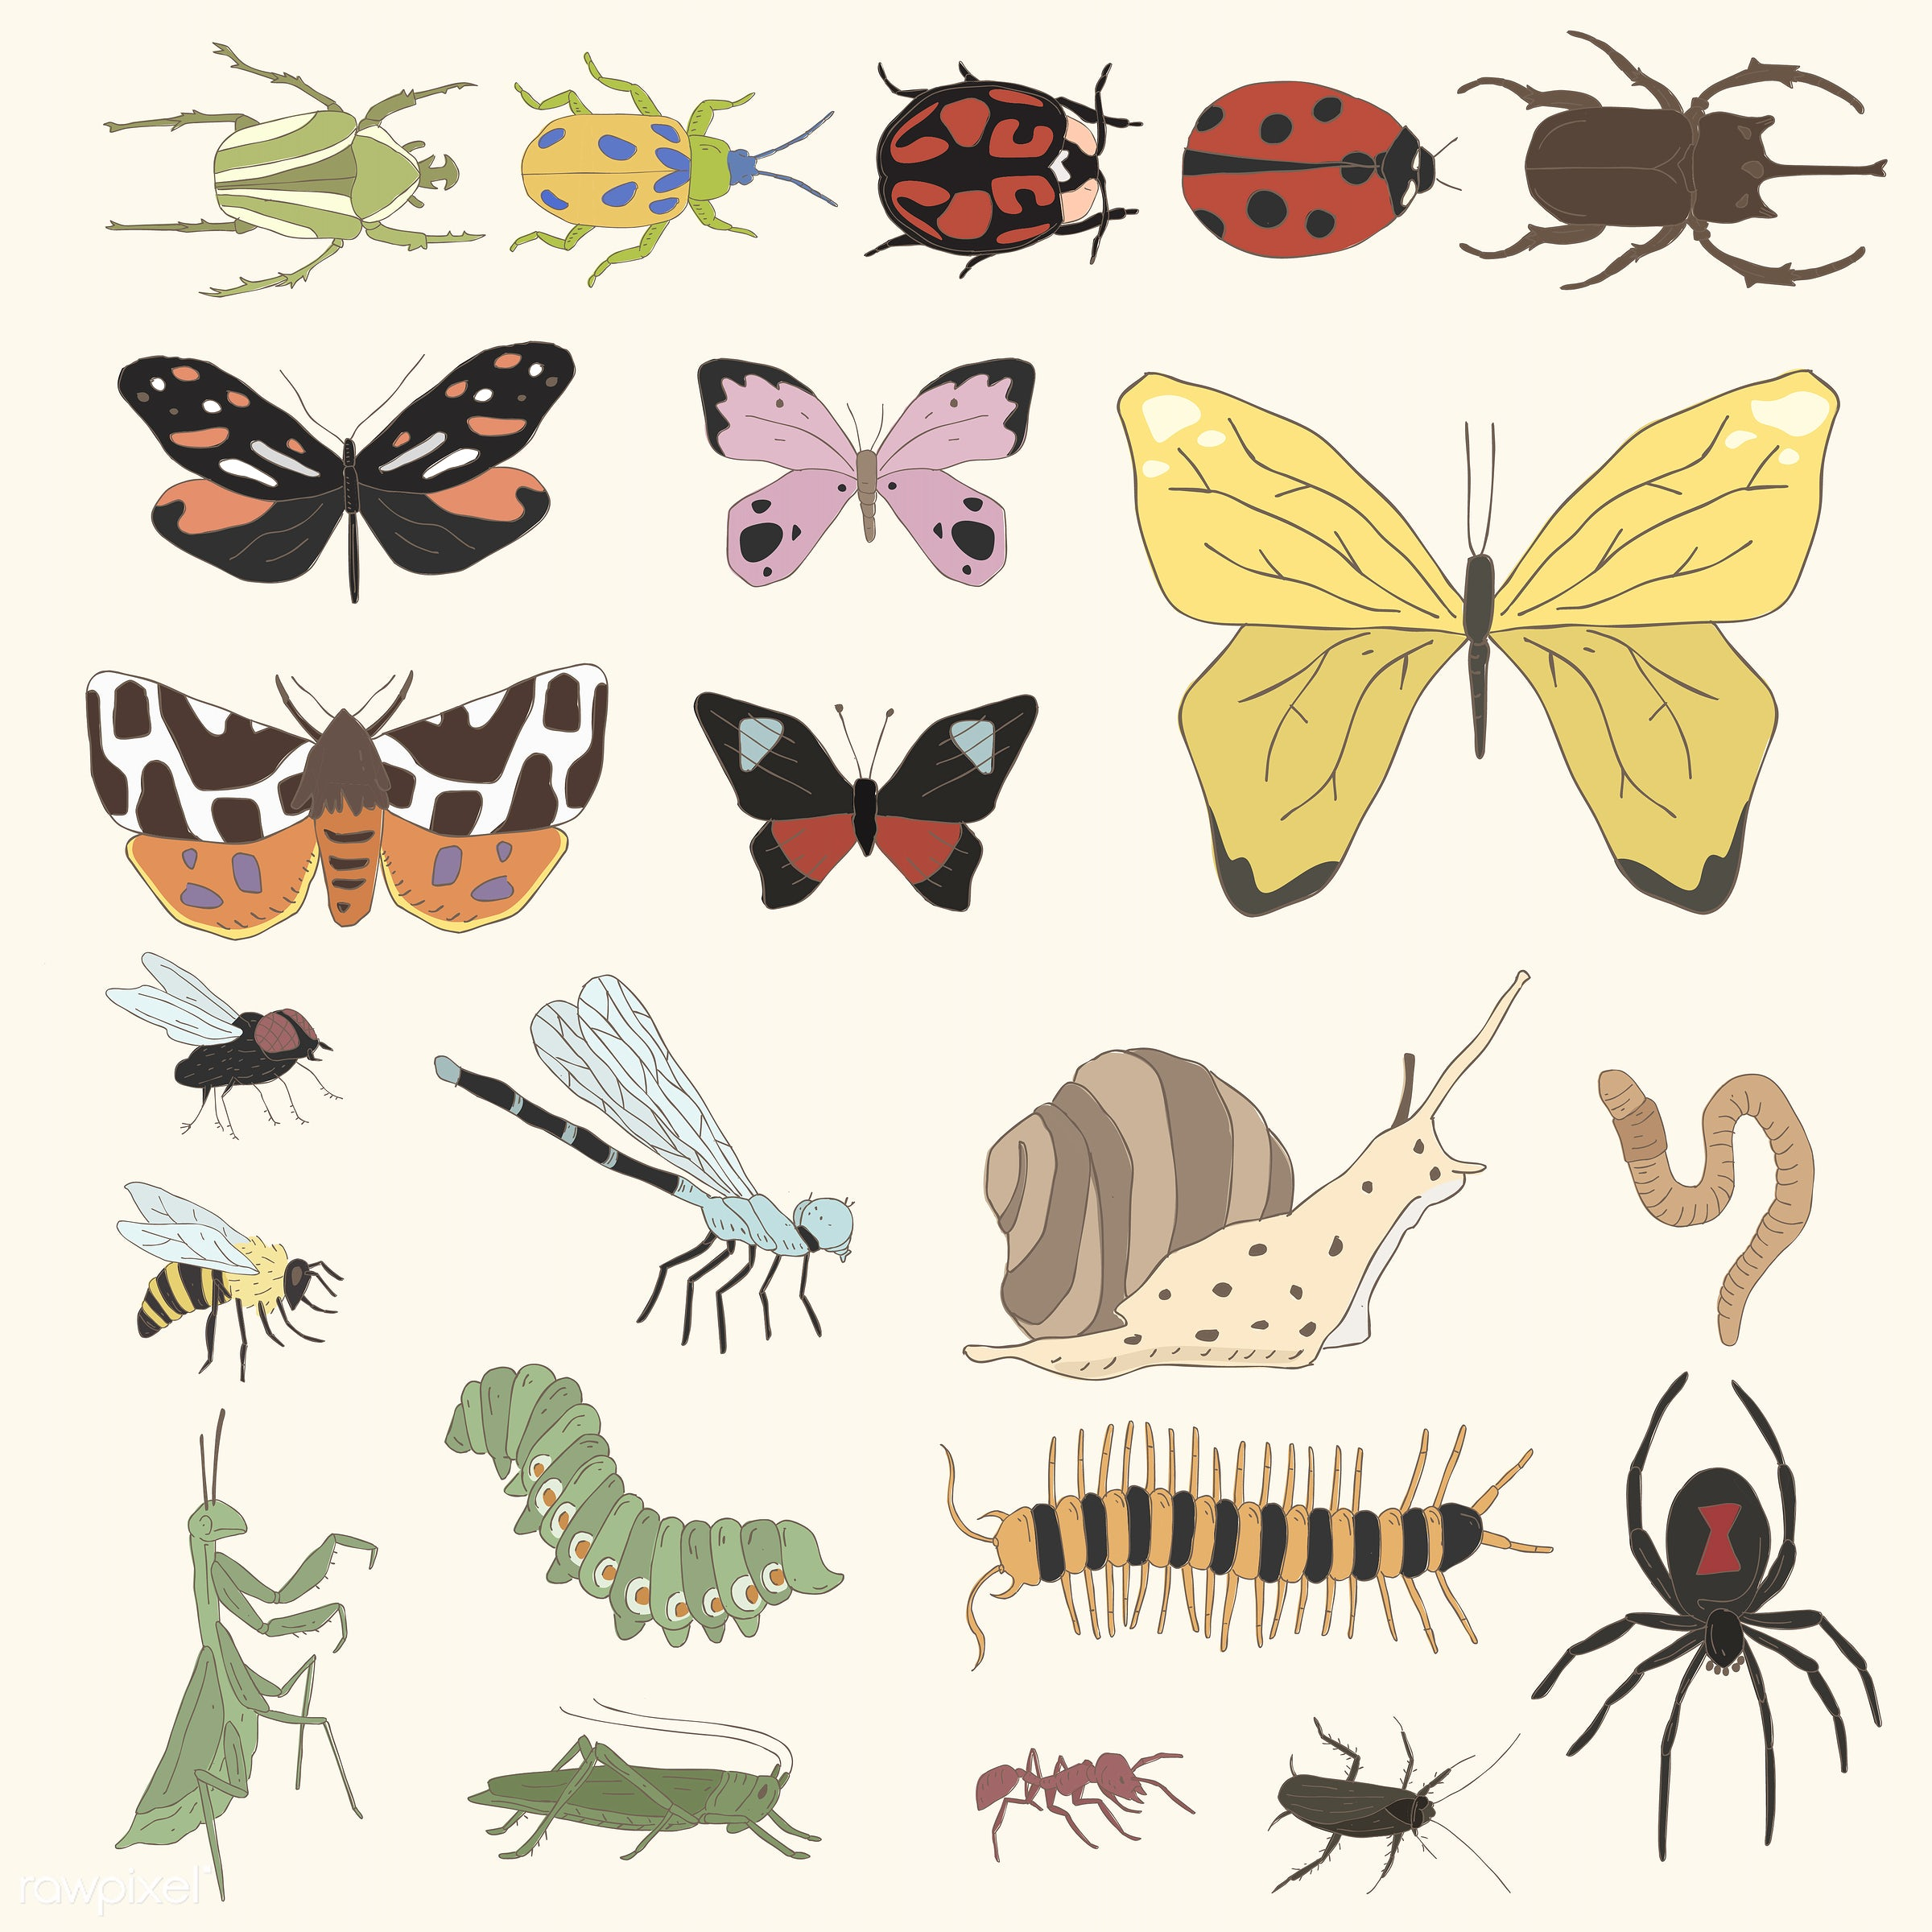 Vector of different kinds of insects - cartoon, doodle, drawing, icon, illustration, insects, nature, sketch, vector, extra...